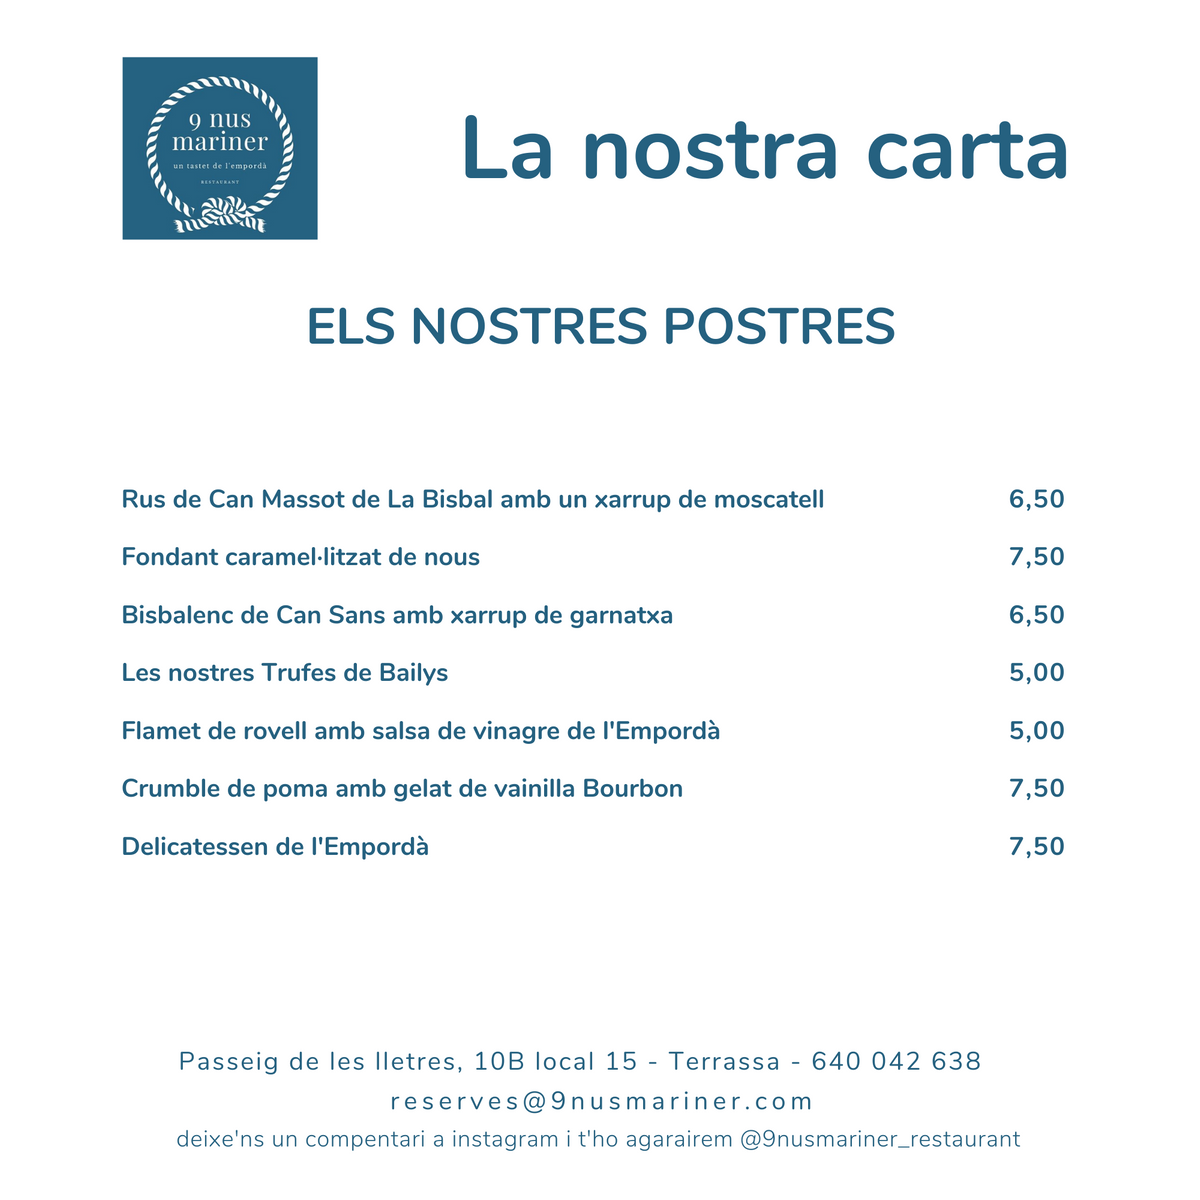 Copia de carta 9 nus mariner 2020 (3)